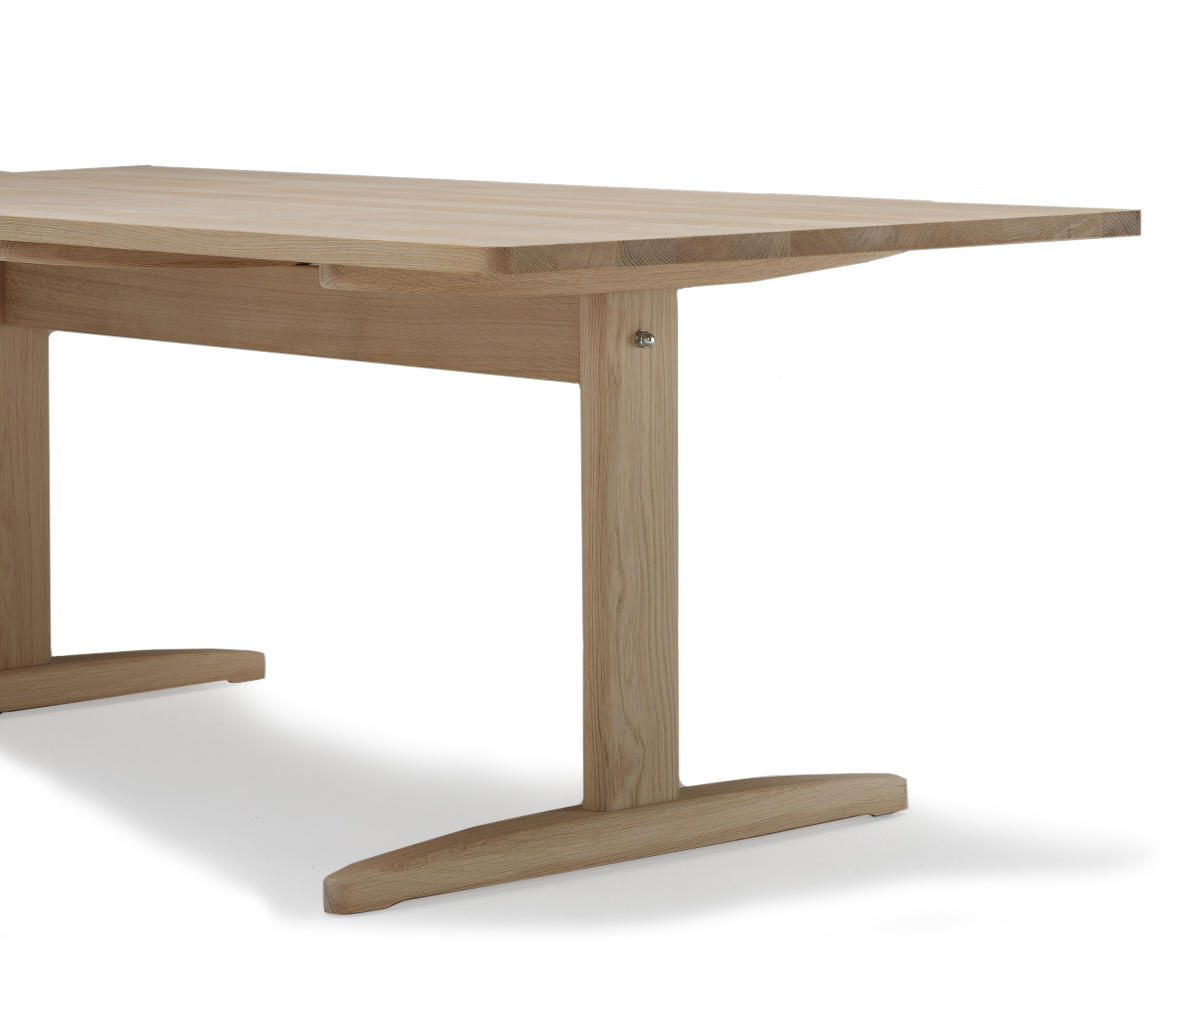 Shaker table restaurant tables from dk3 architonic for Restaurant tables